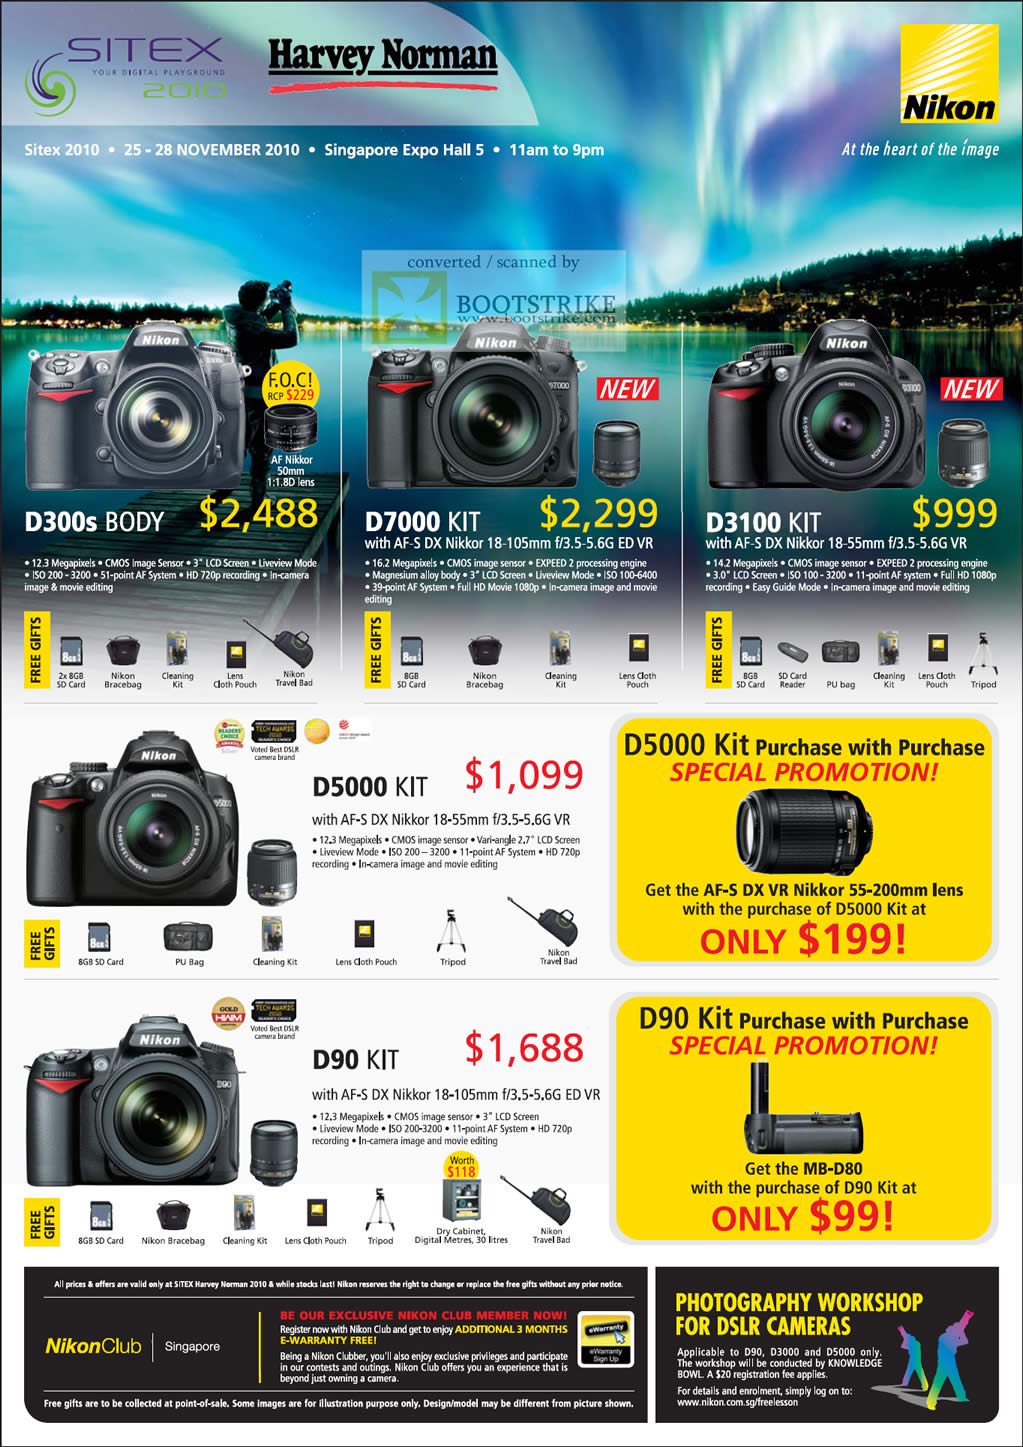 Sitex 2010 price list image brochure of Nikon Digital Cameras DSLR D300s D7000 D3100 Kit Body D5000 D90